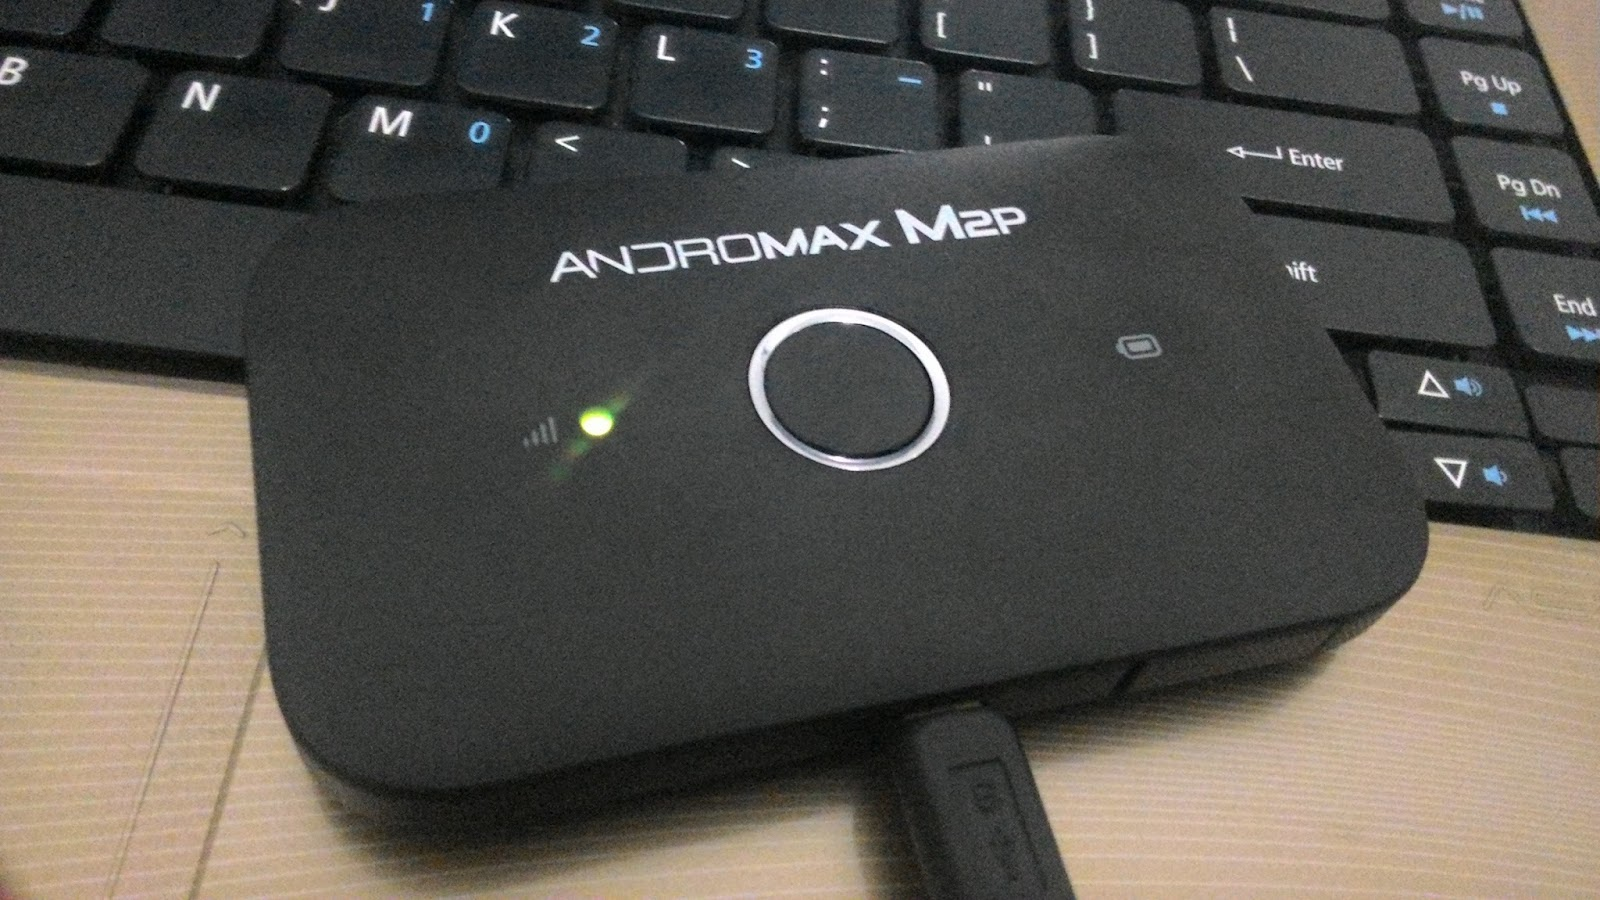 Andromax 4G Lte M2P Review